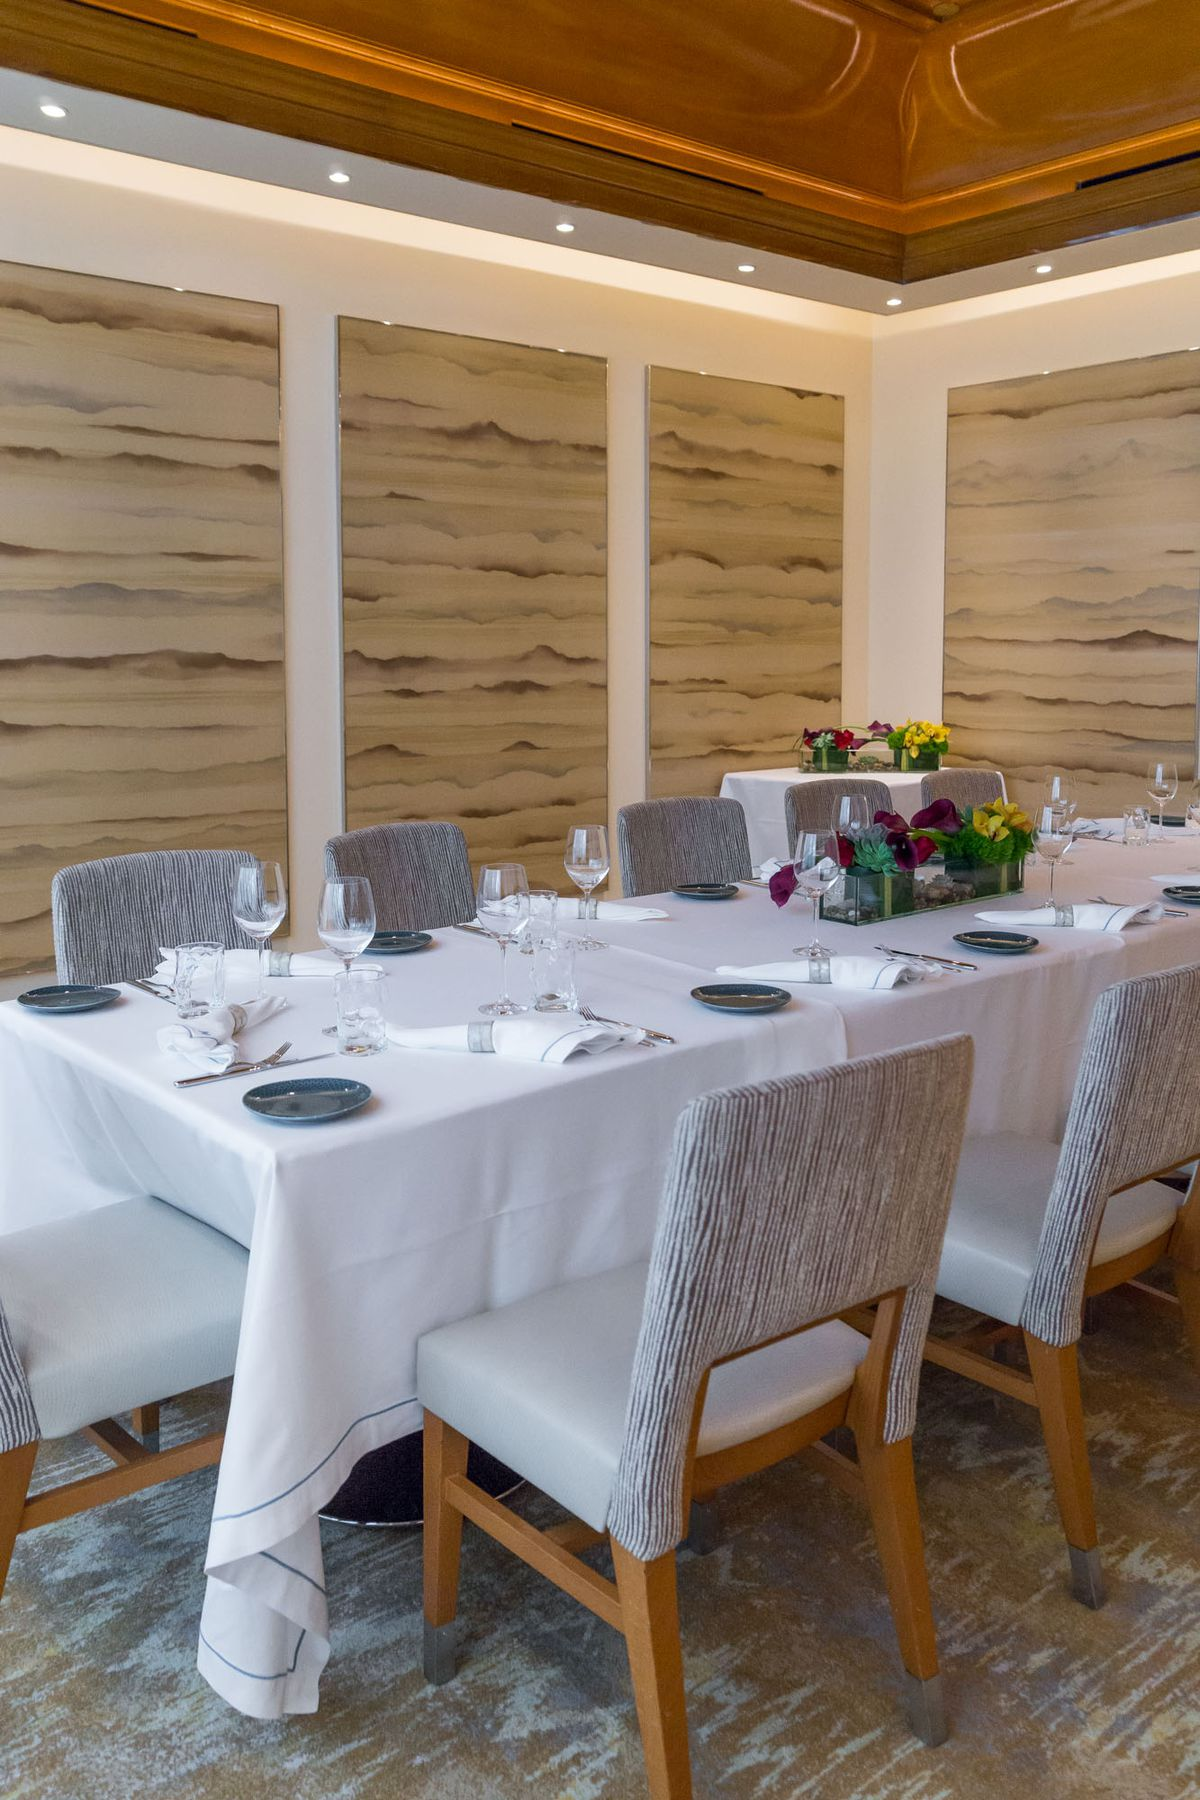 The private dining room at Michael Mina